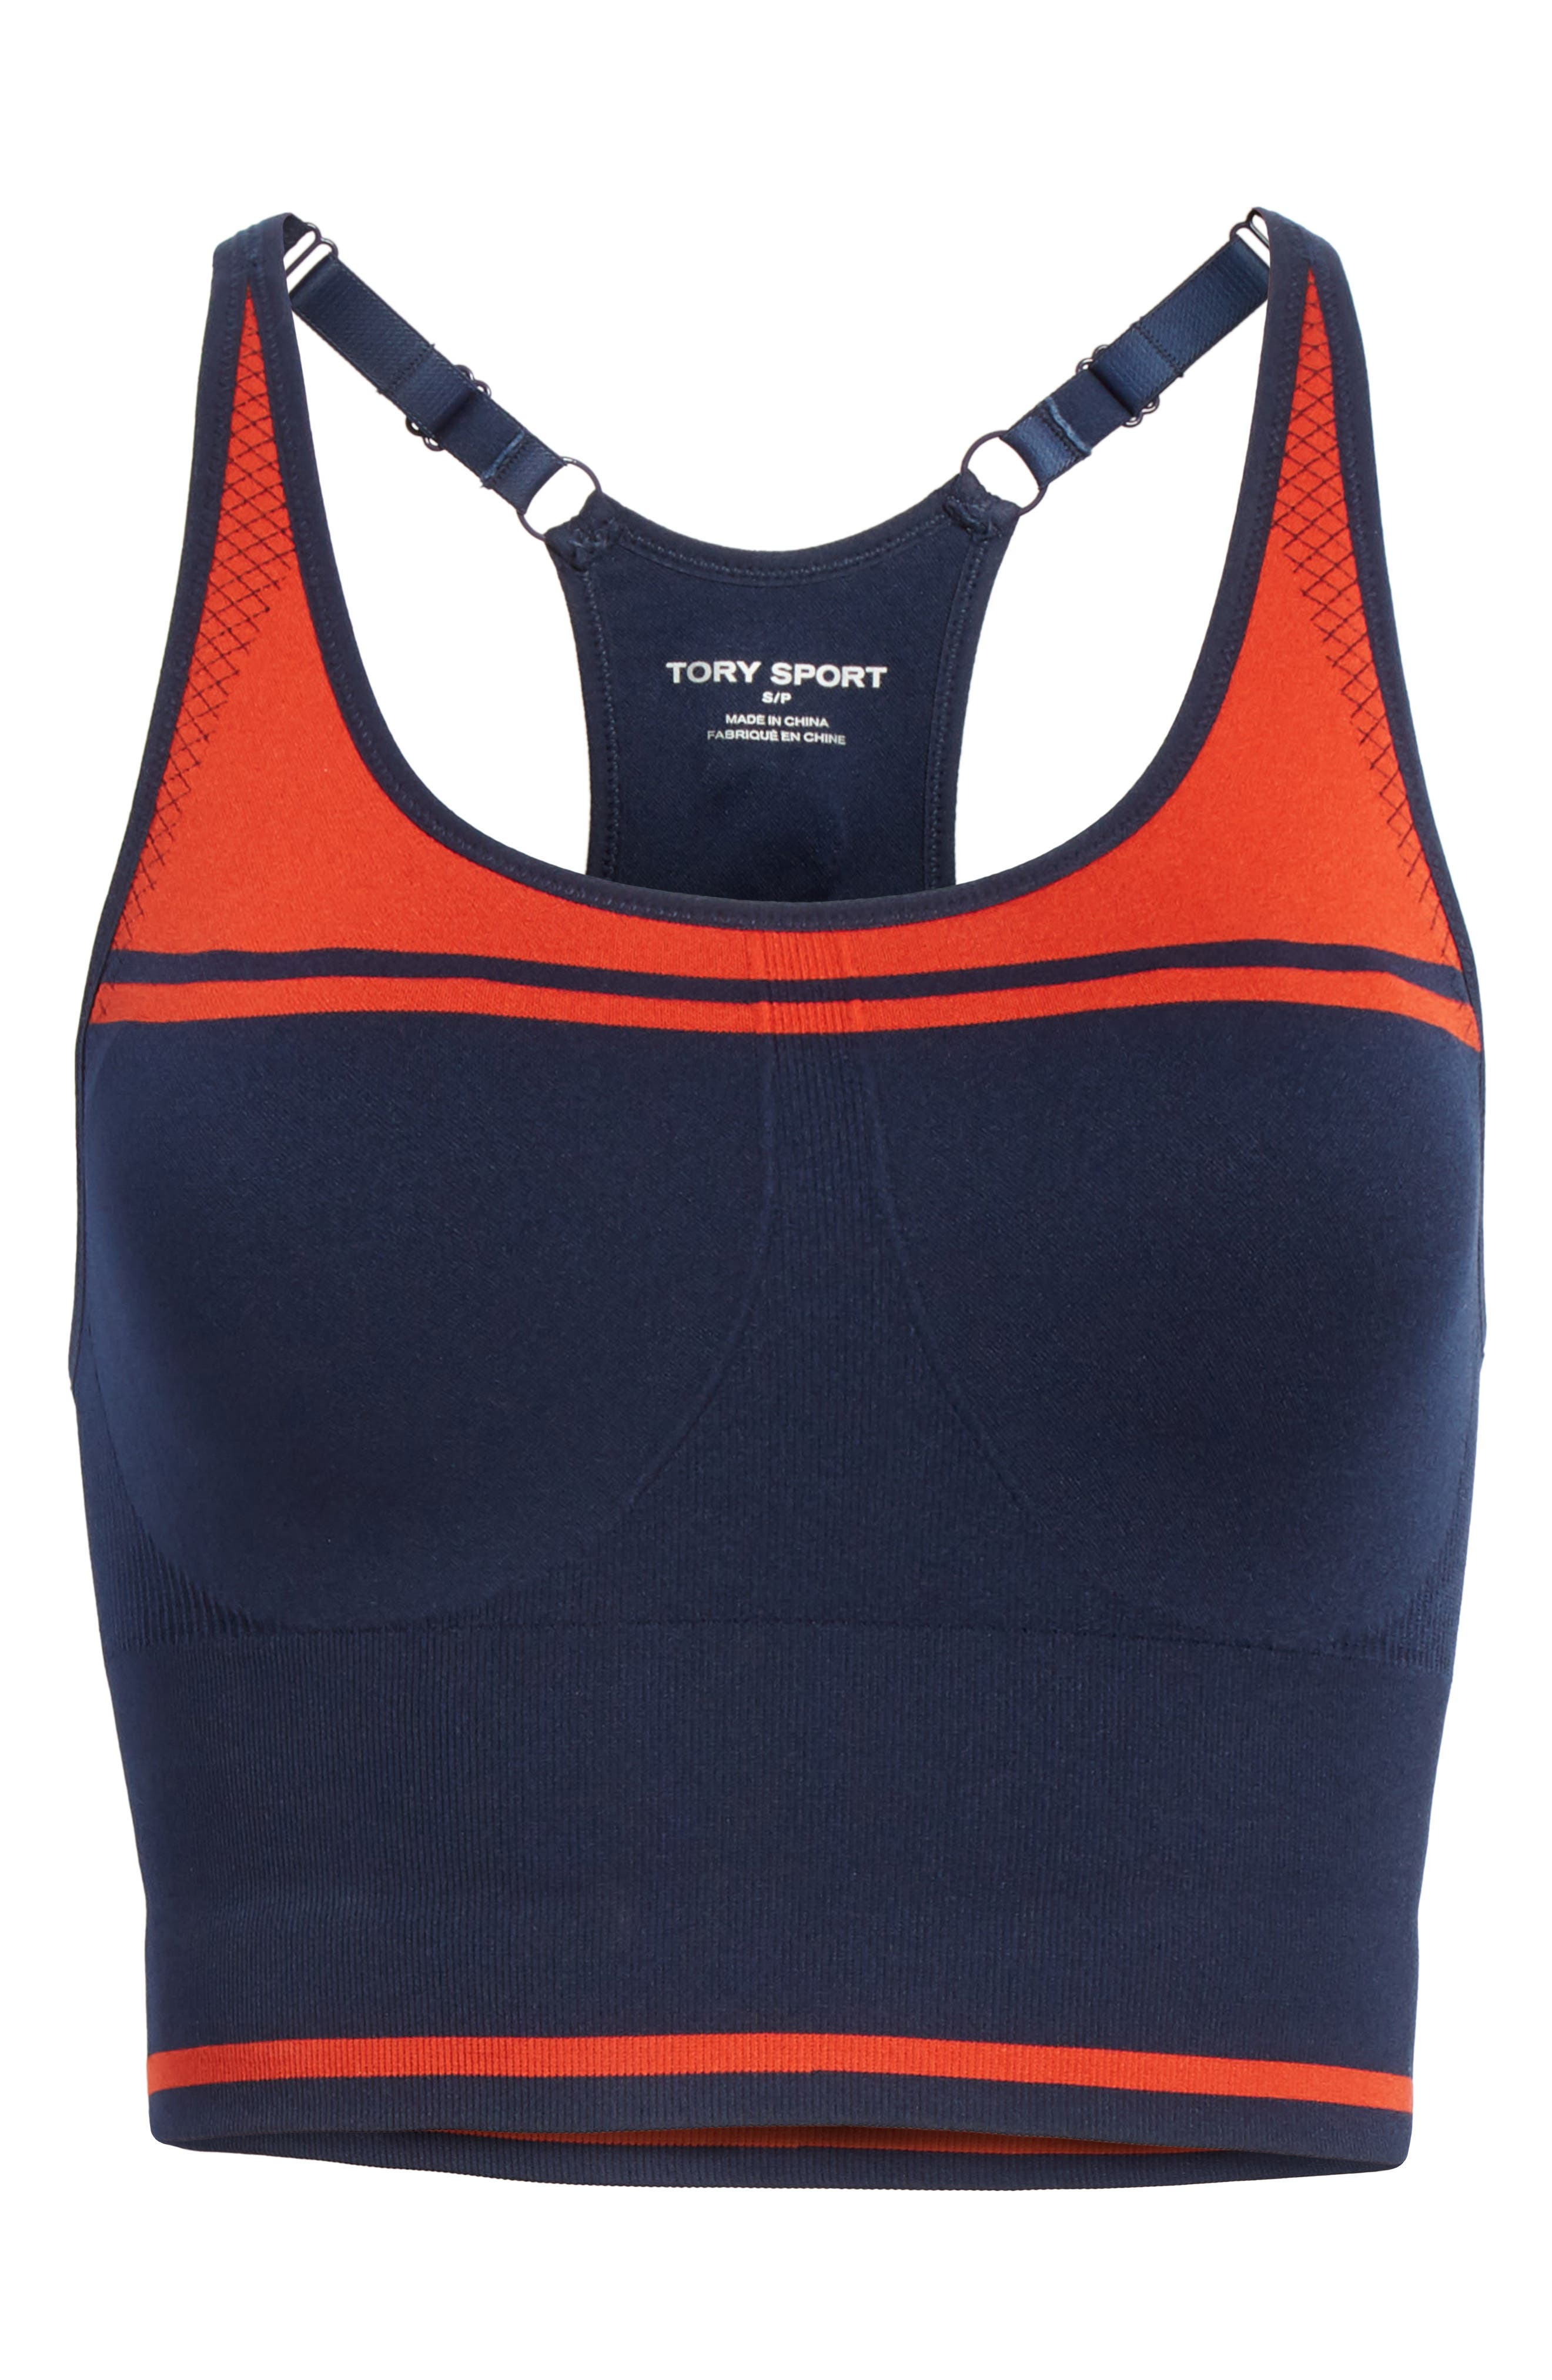 Two-Tone Seamless Camisole Long Bra,                             Alternate thumbnail 7, color,                             TORY NAVY/ RED